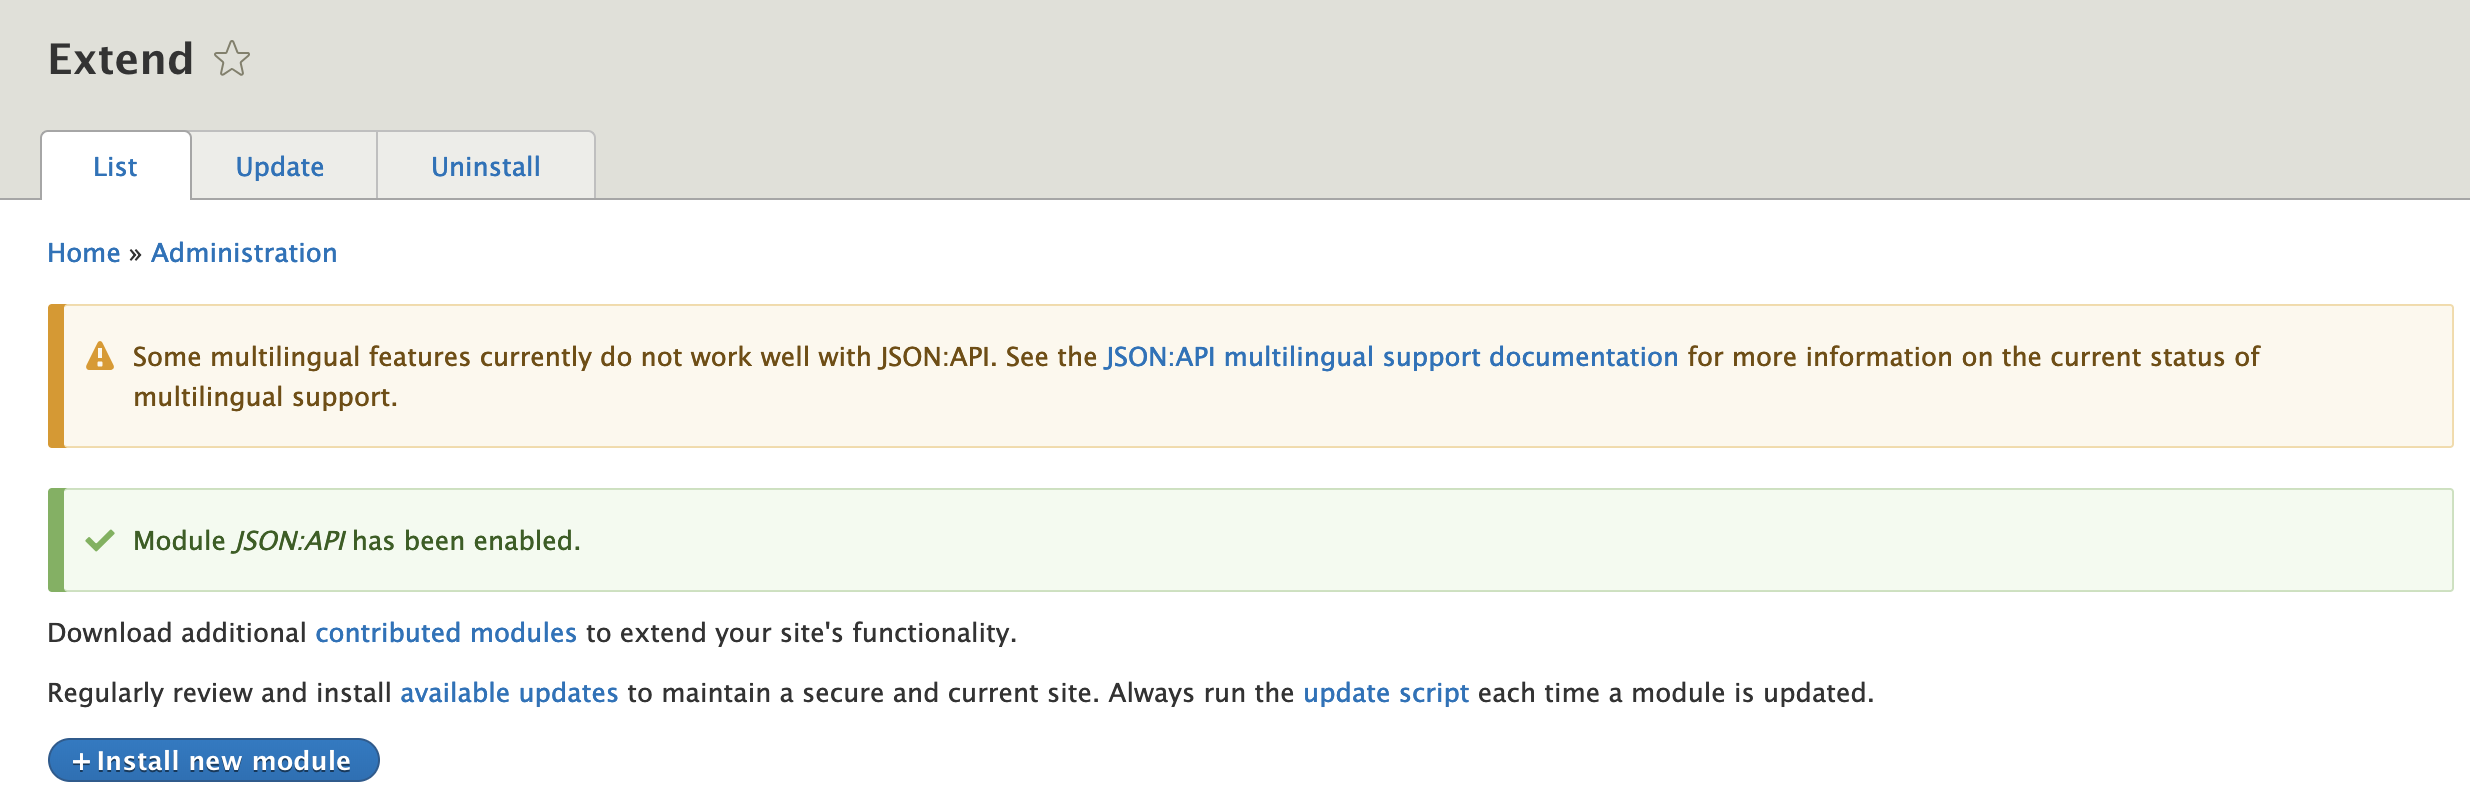 Document the extent of JSON:API's multilingual support